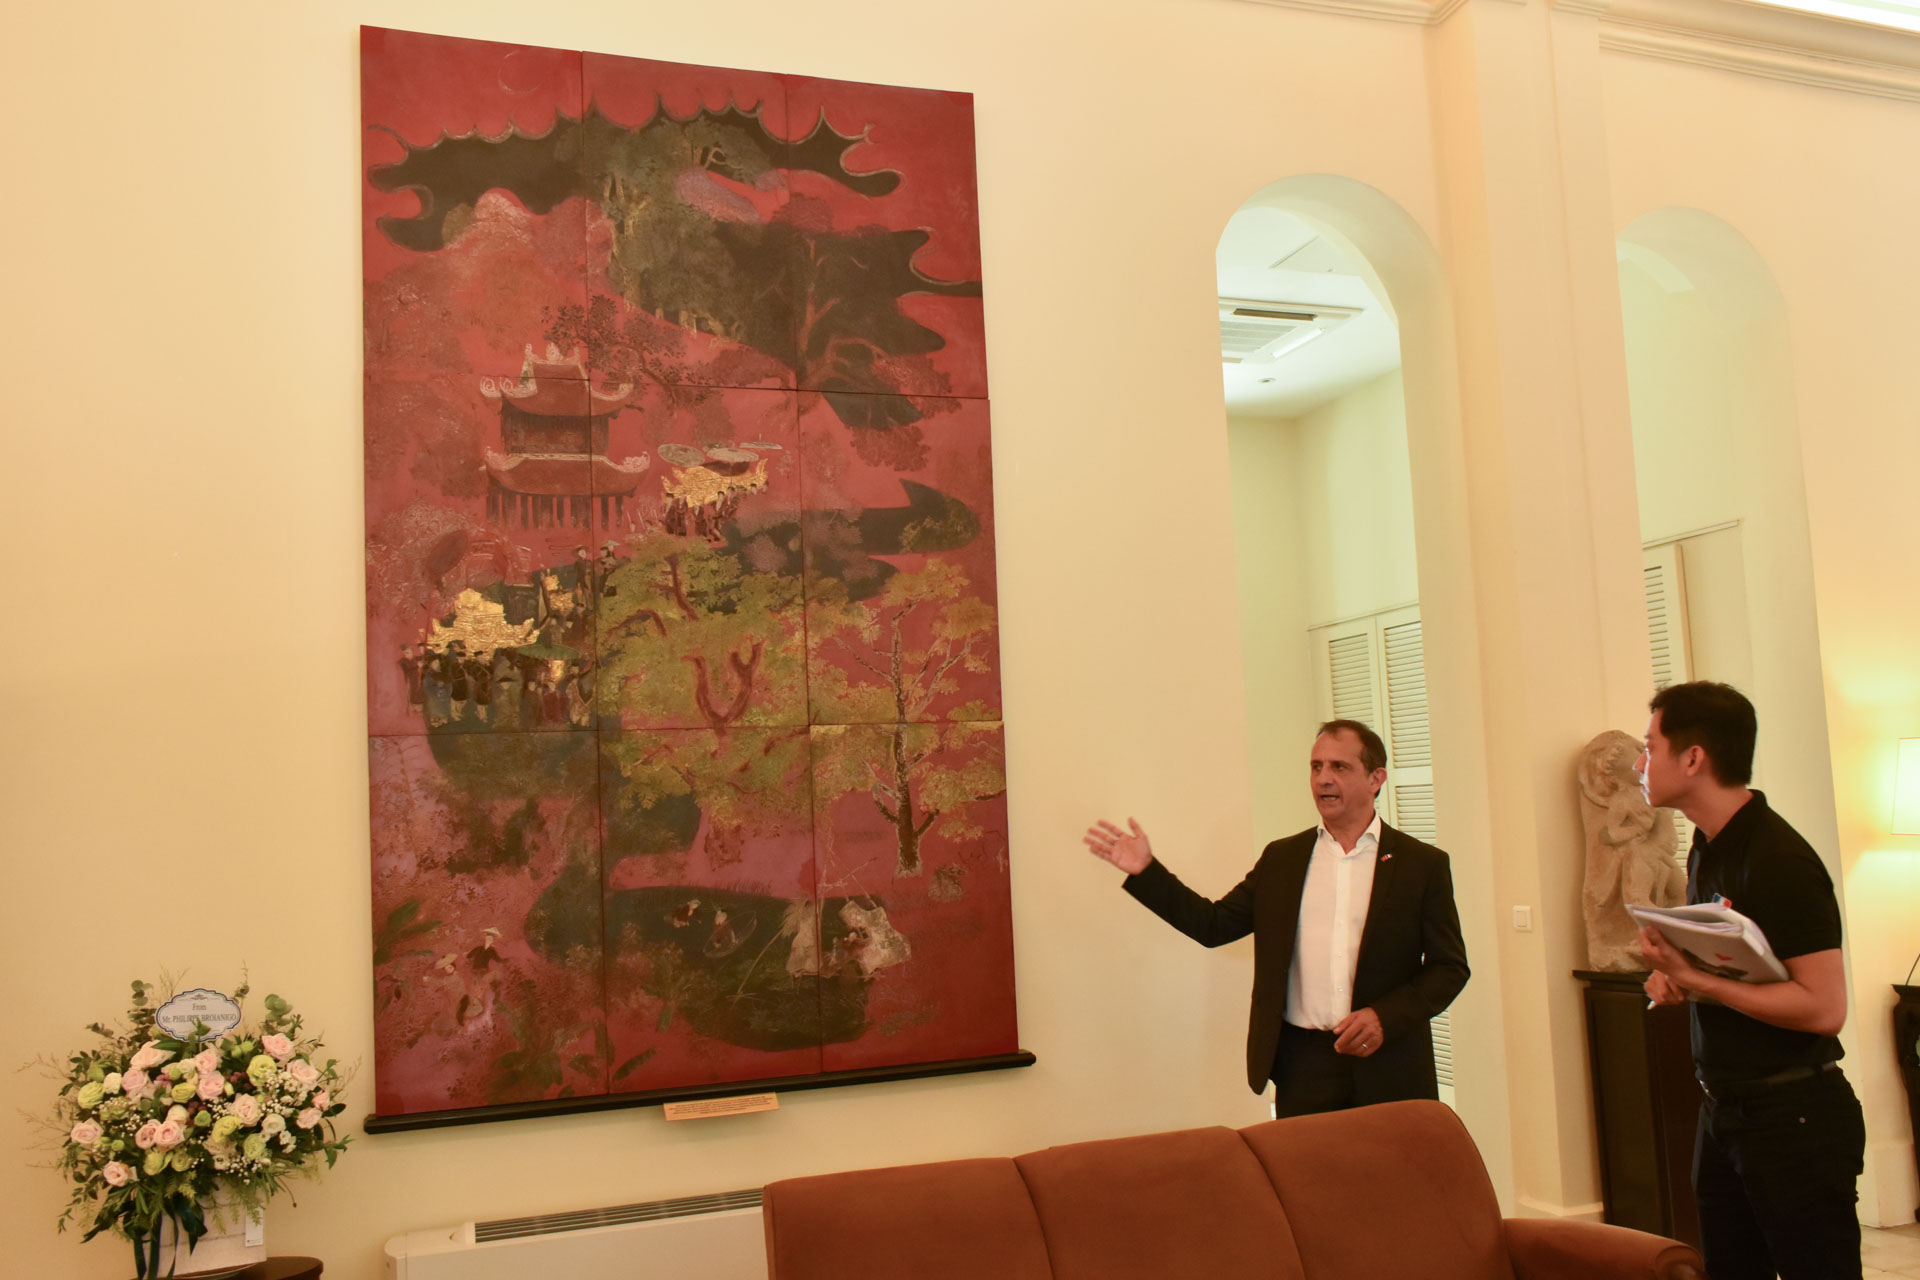 French Consul General in Ho Chi Minh City Vincent Floreani presents about a painting by Nguyen Gia Tri to visitors on the European Heritage Days, September 21, 2019. Photo: Tuan Son / Tuoi Tre News